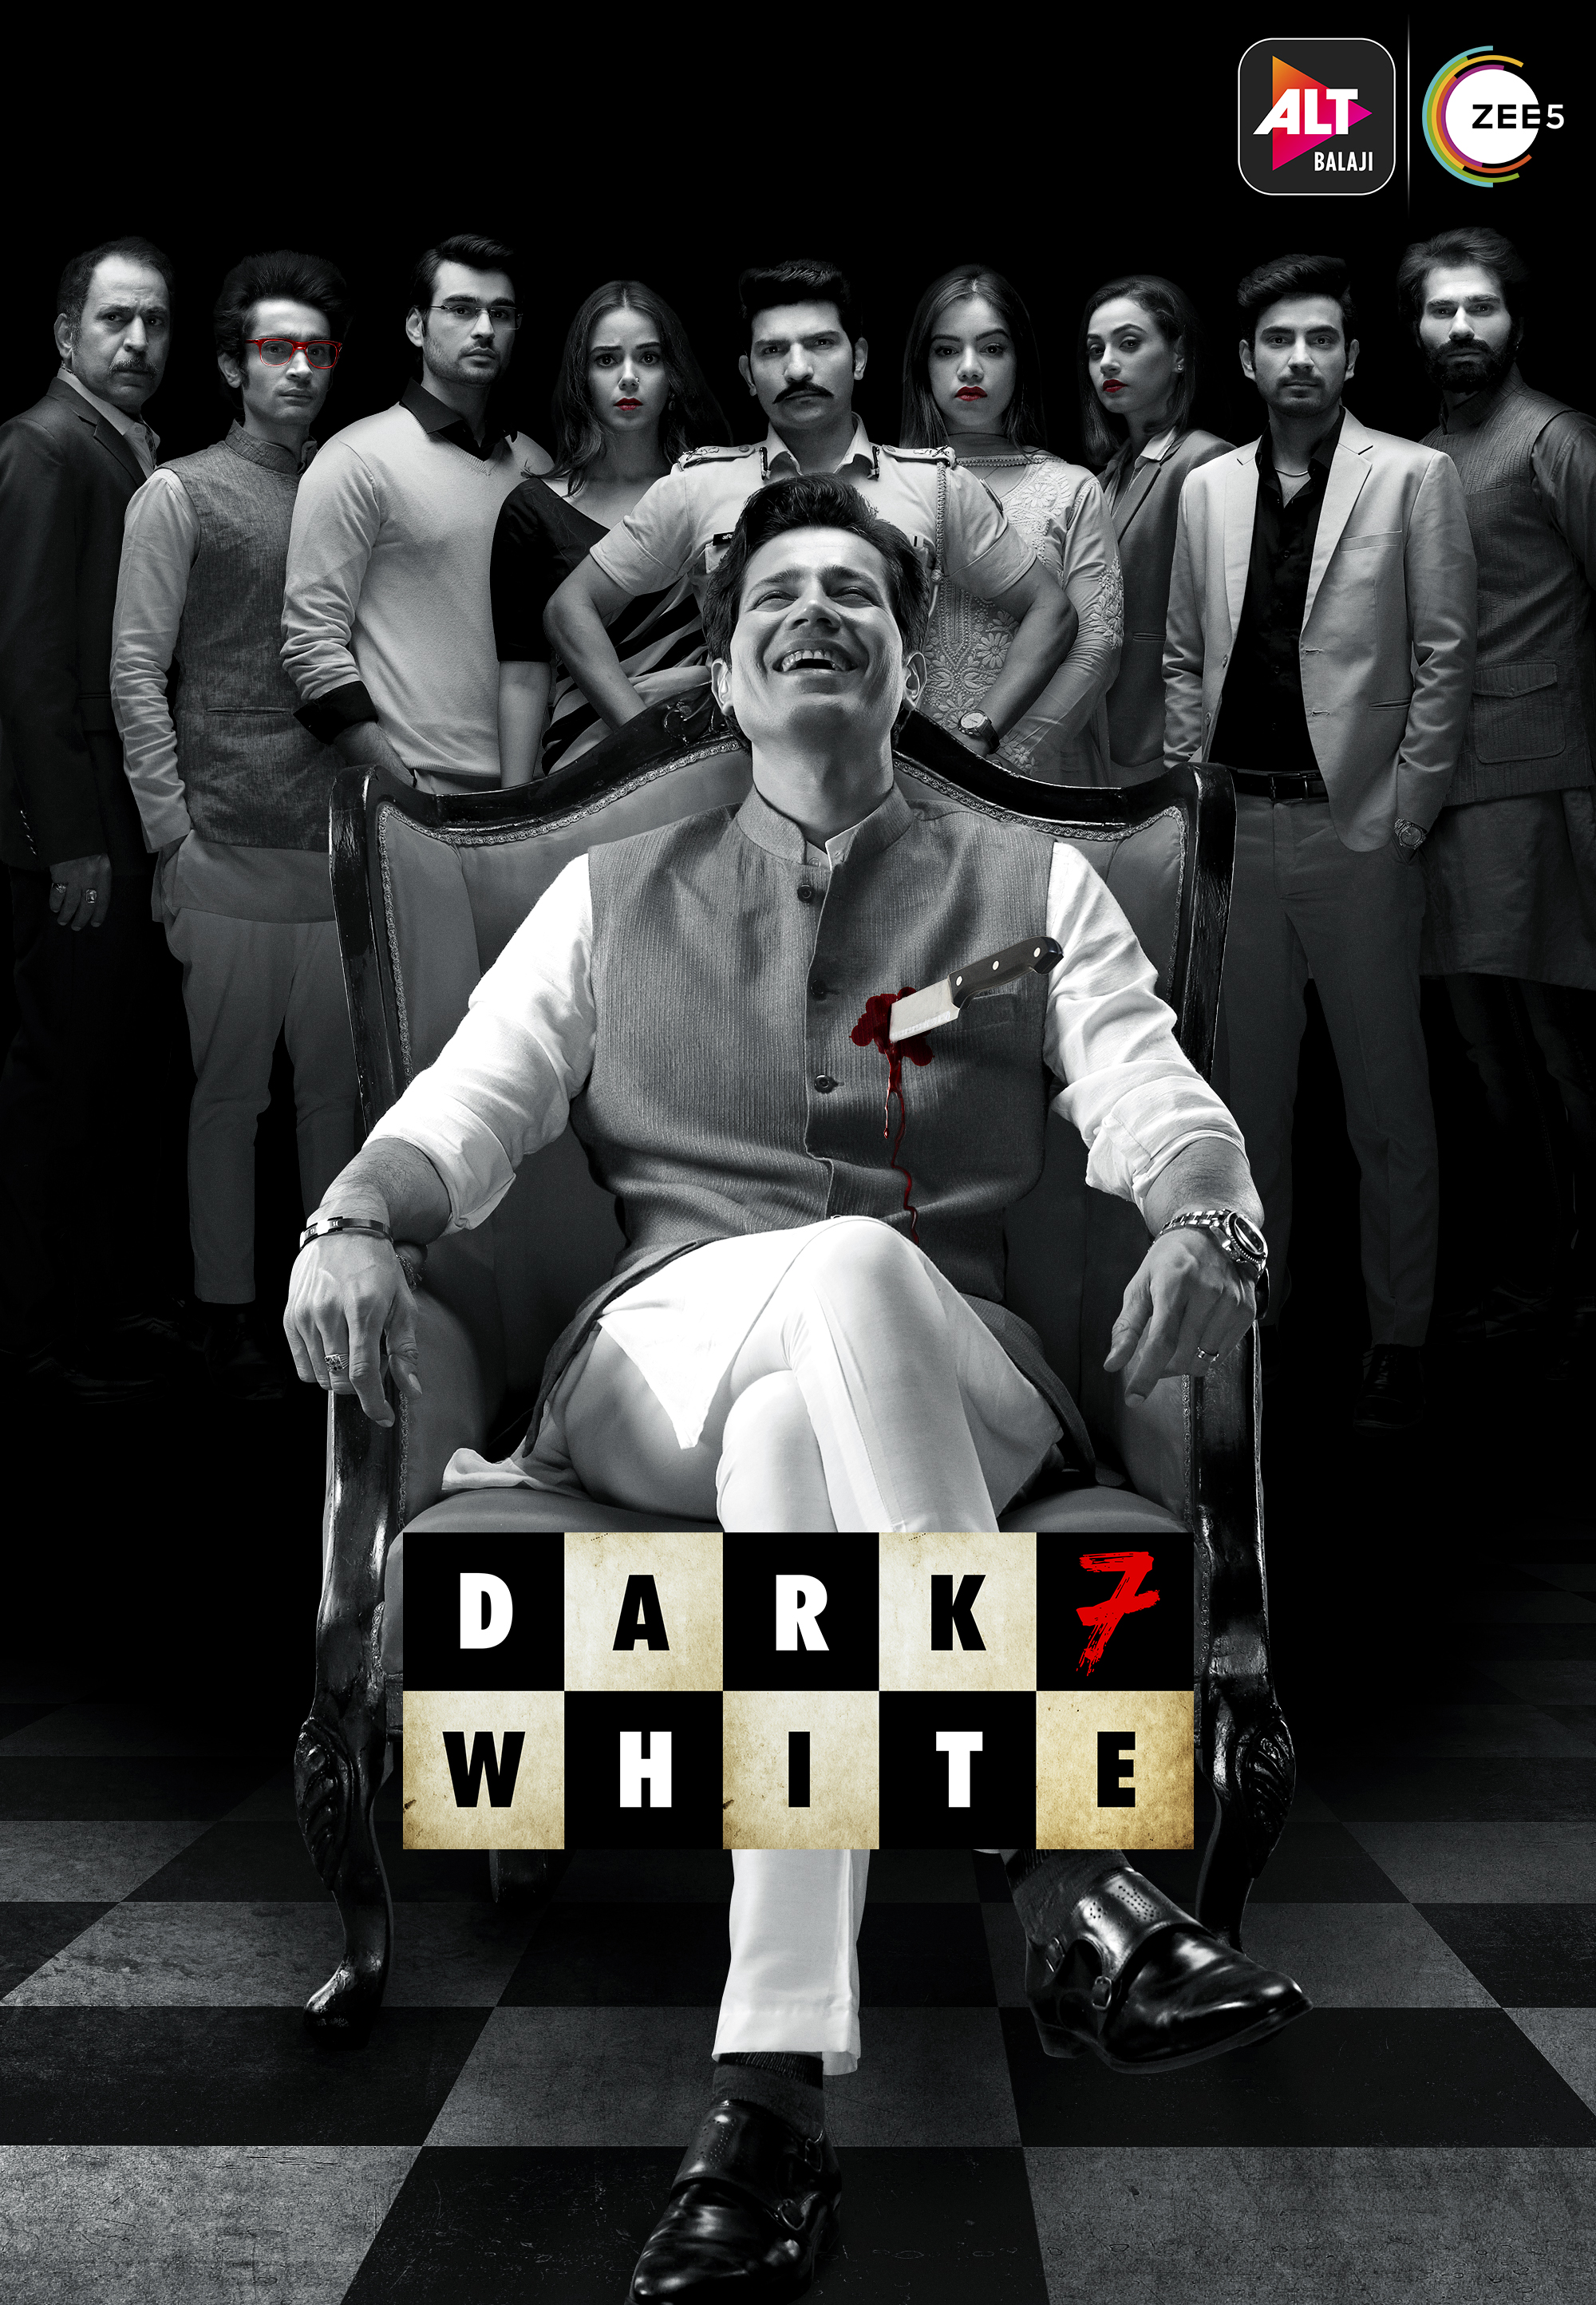 Dark 7 White 2020 S01 Hindi Complete ALTBalaji Original Web Series 600MB HDRip Download